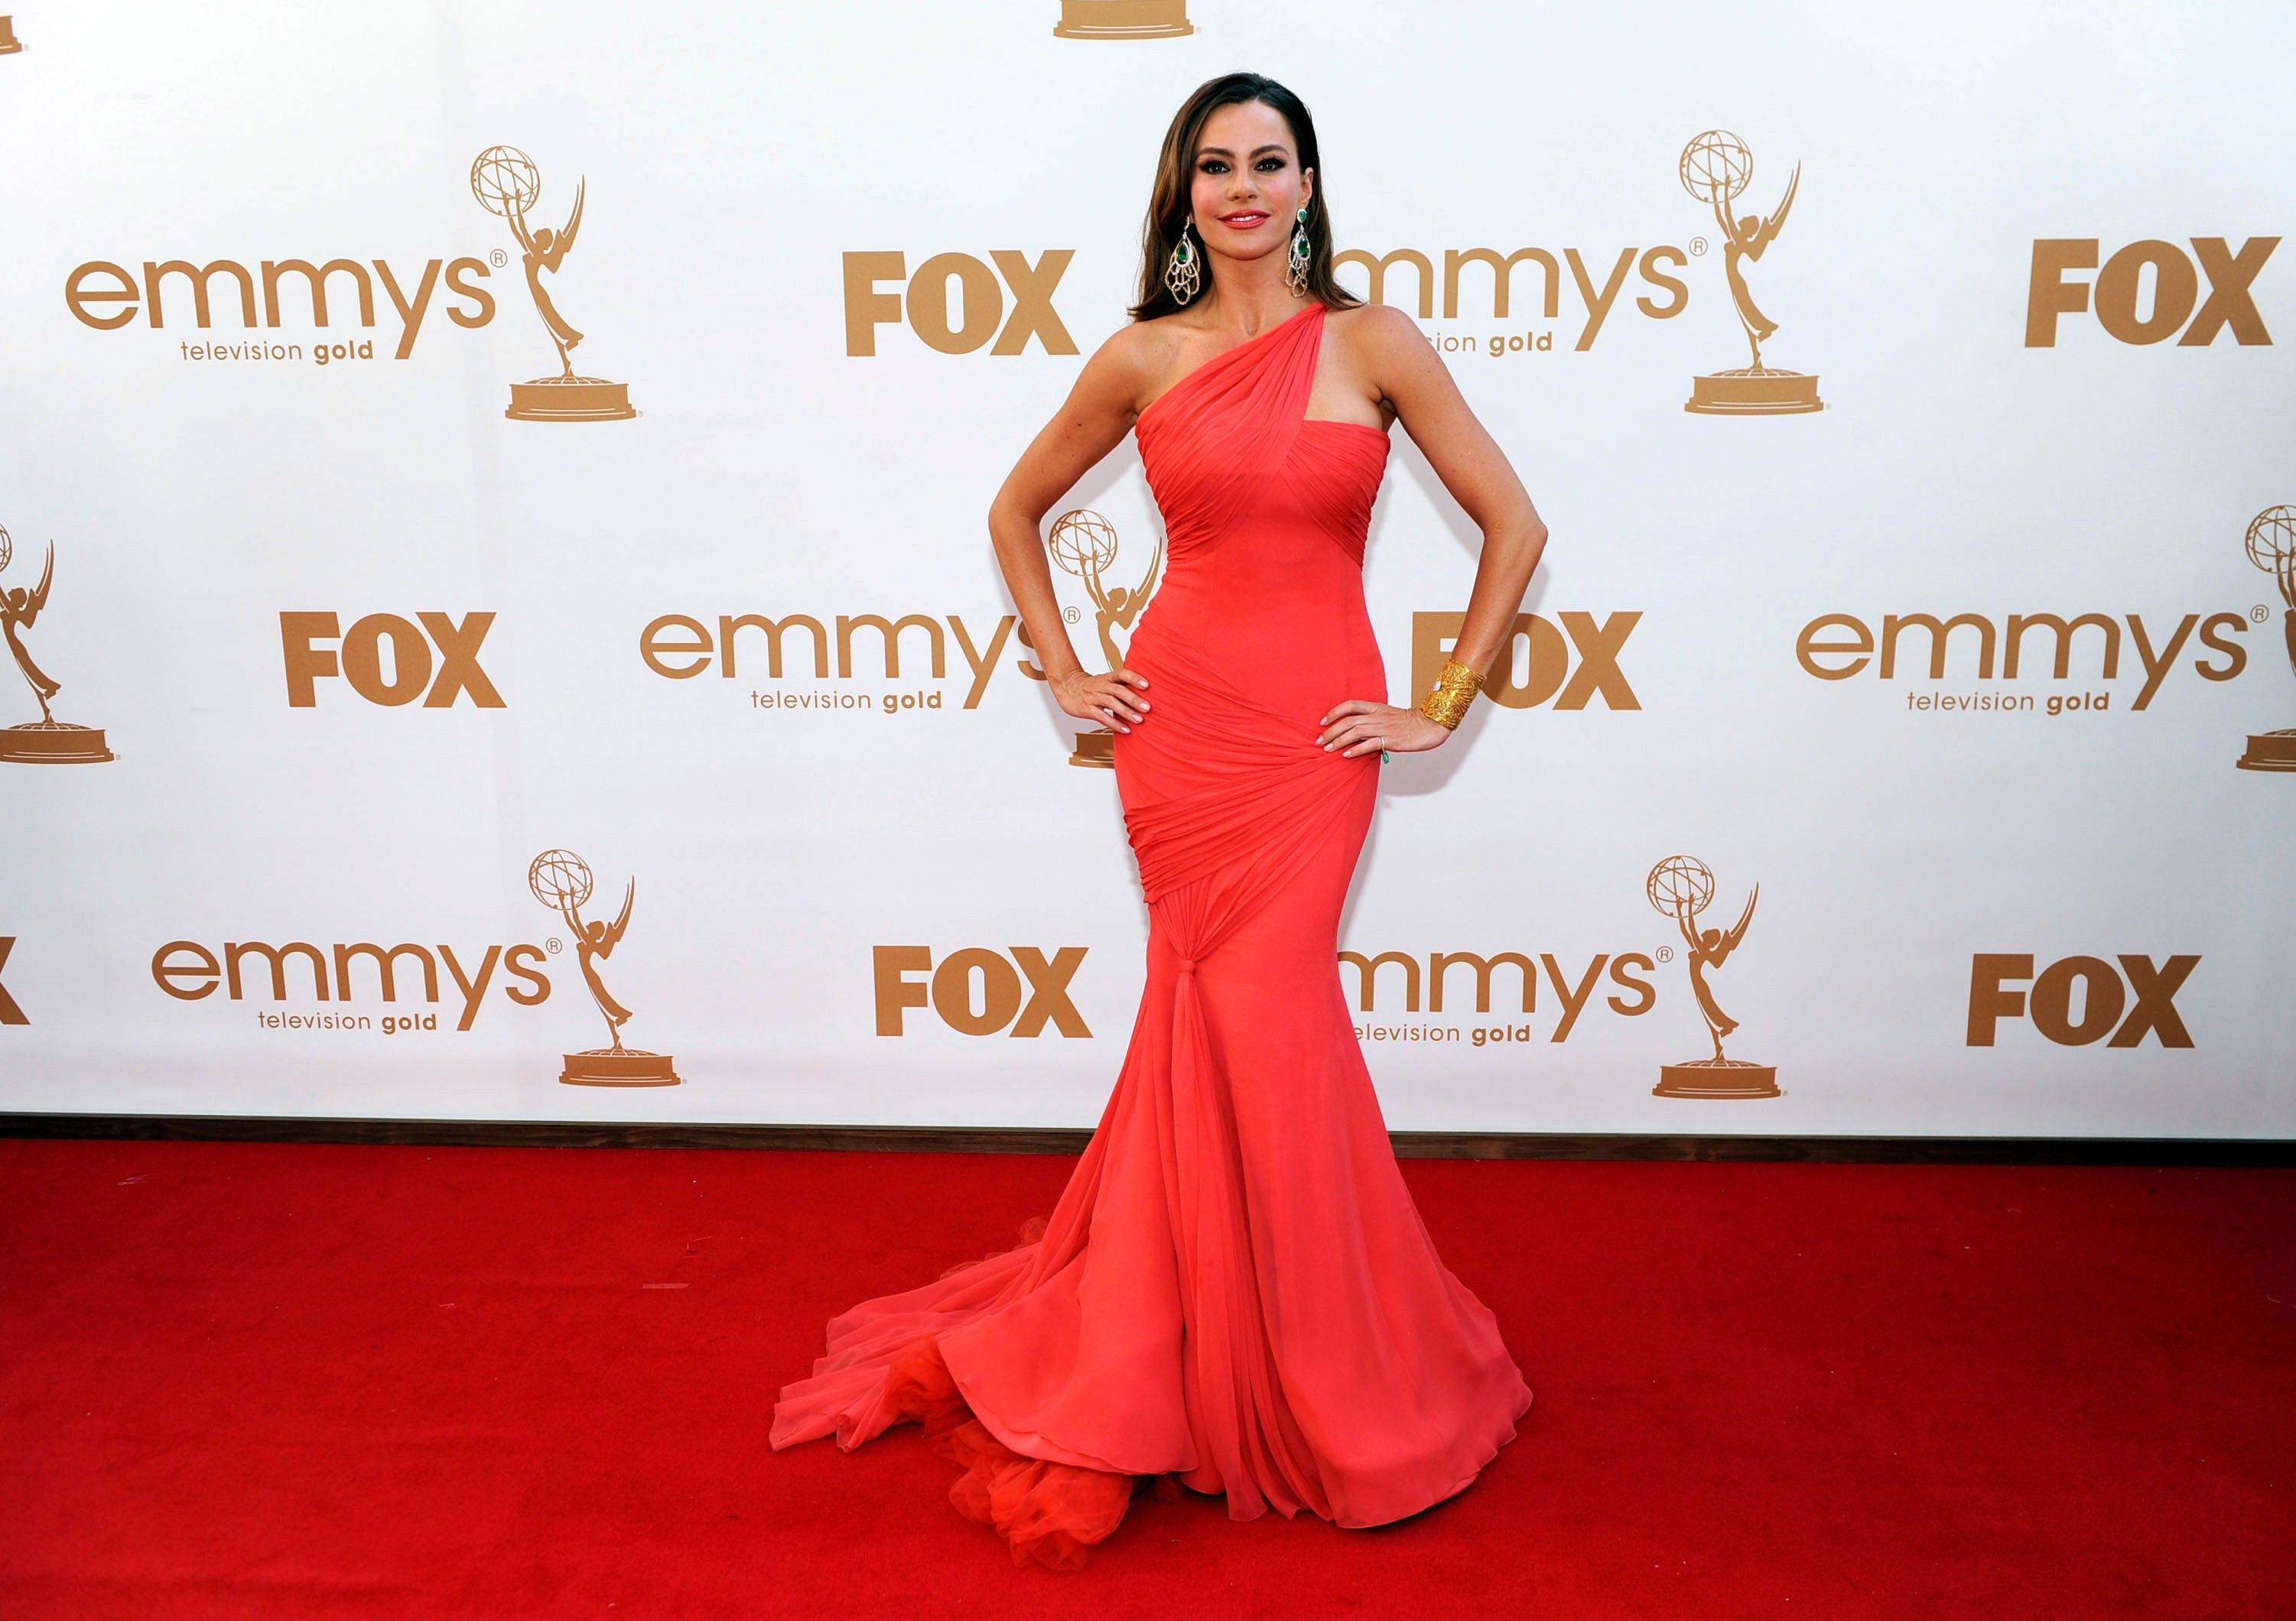 """Modern Family"" actress Sofia Vergara joins the list of lovely ladies in red."